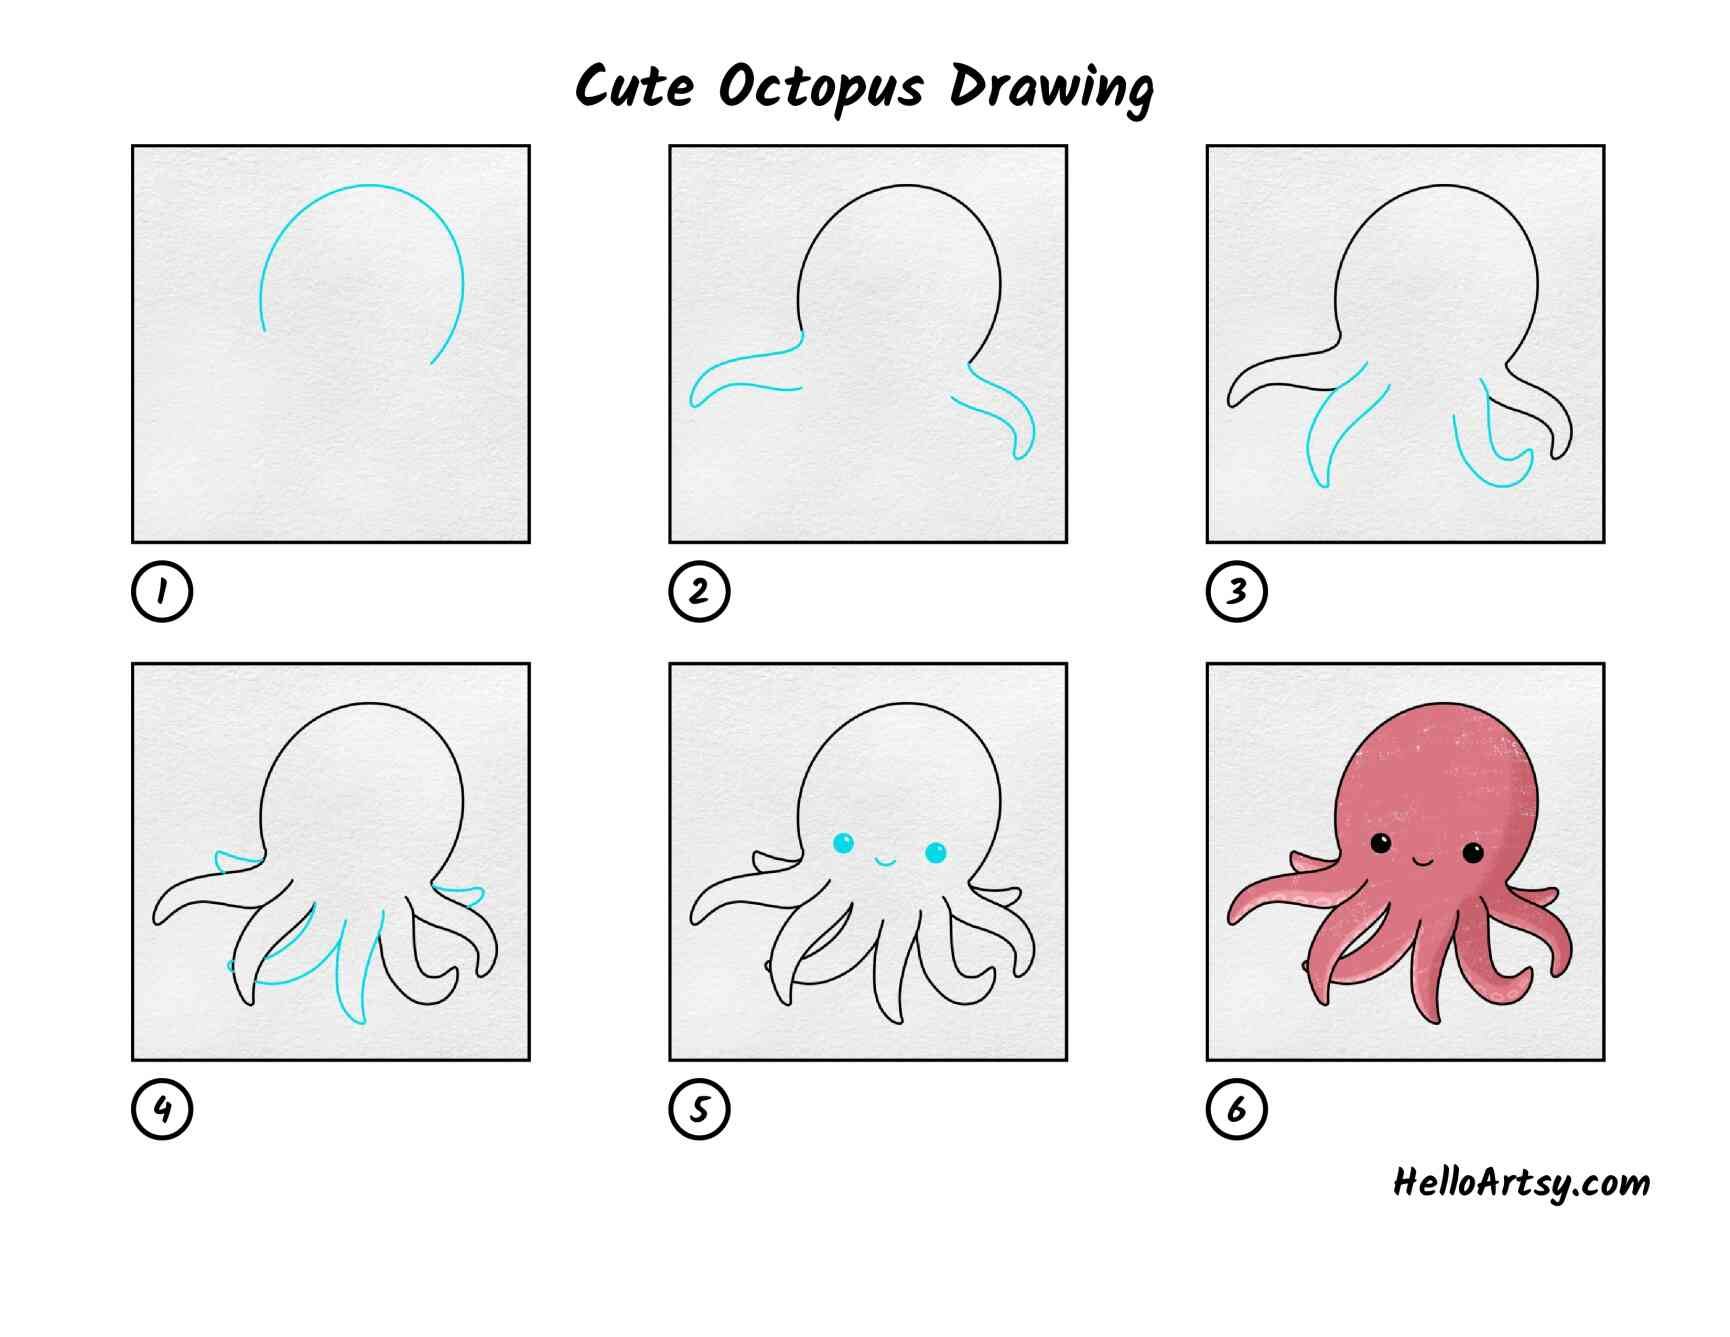 Cute Octopus Drawing: All Steps